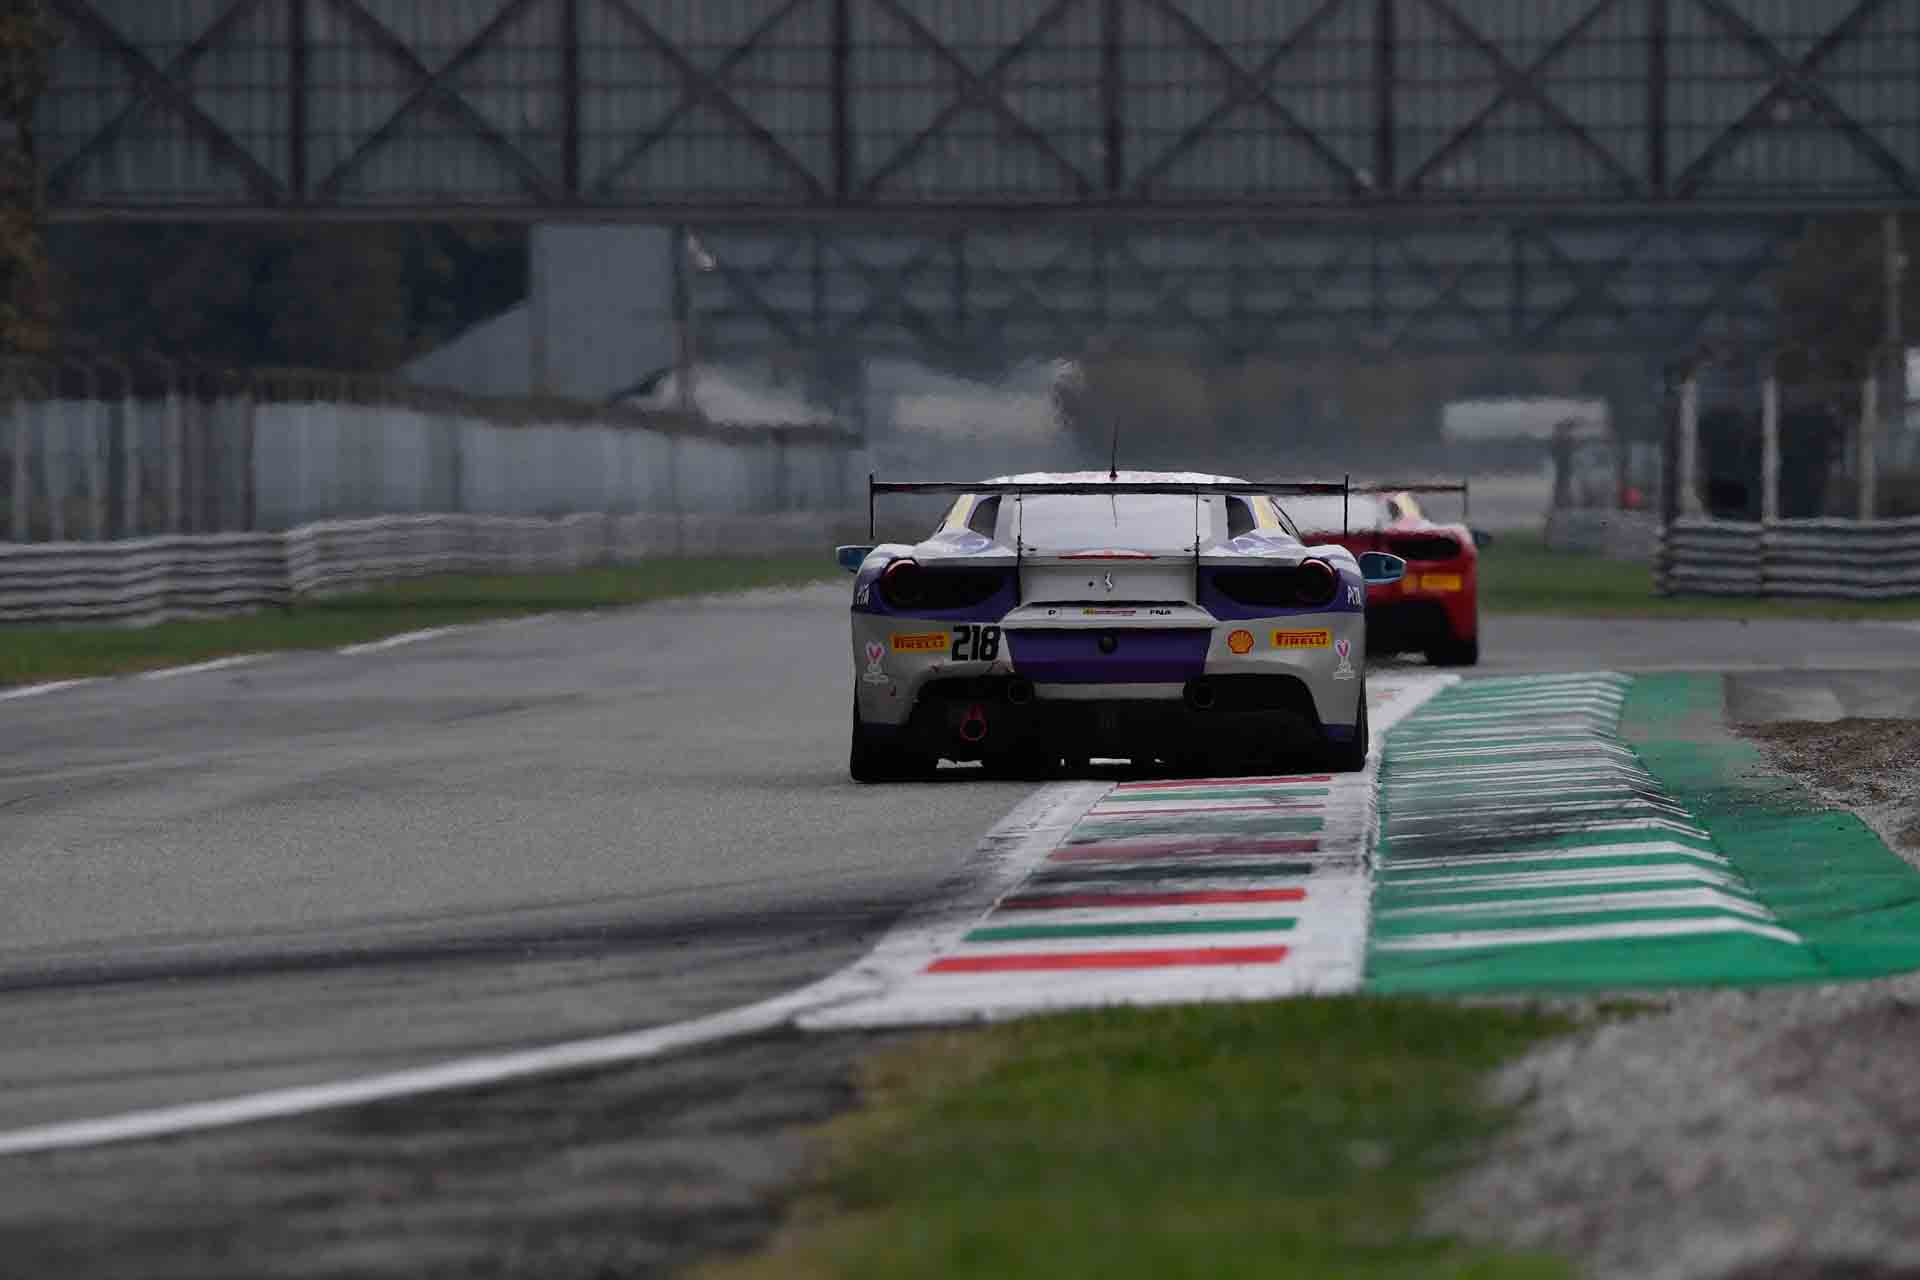 World Finali at Monza